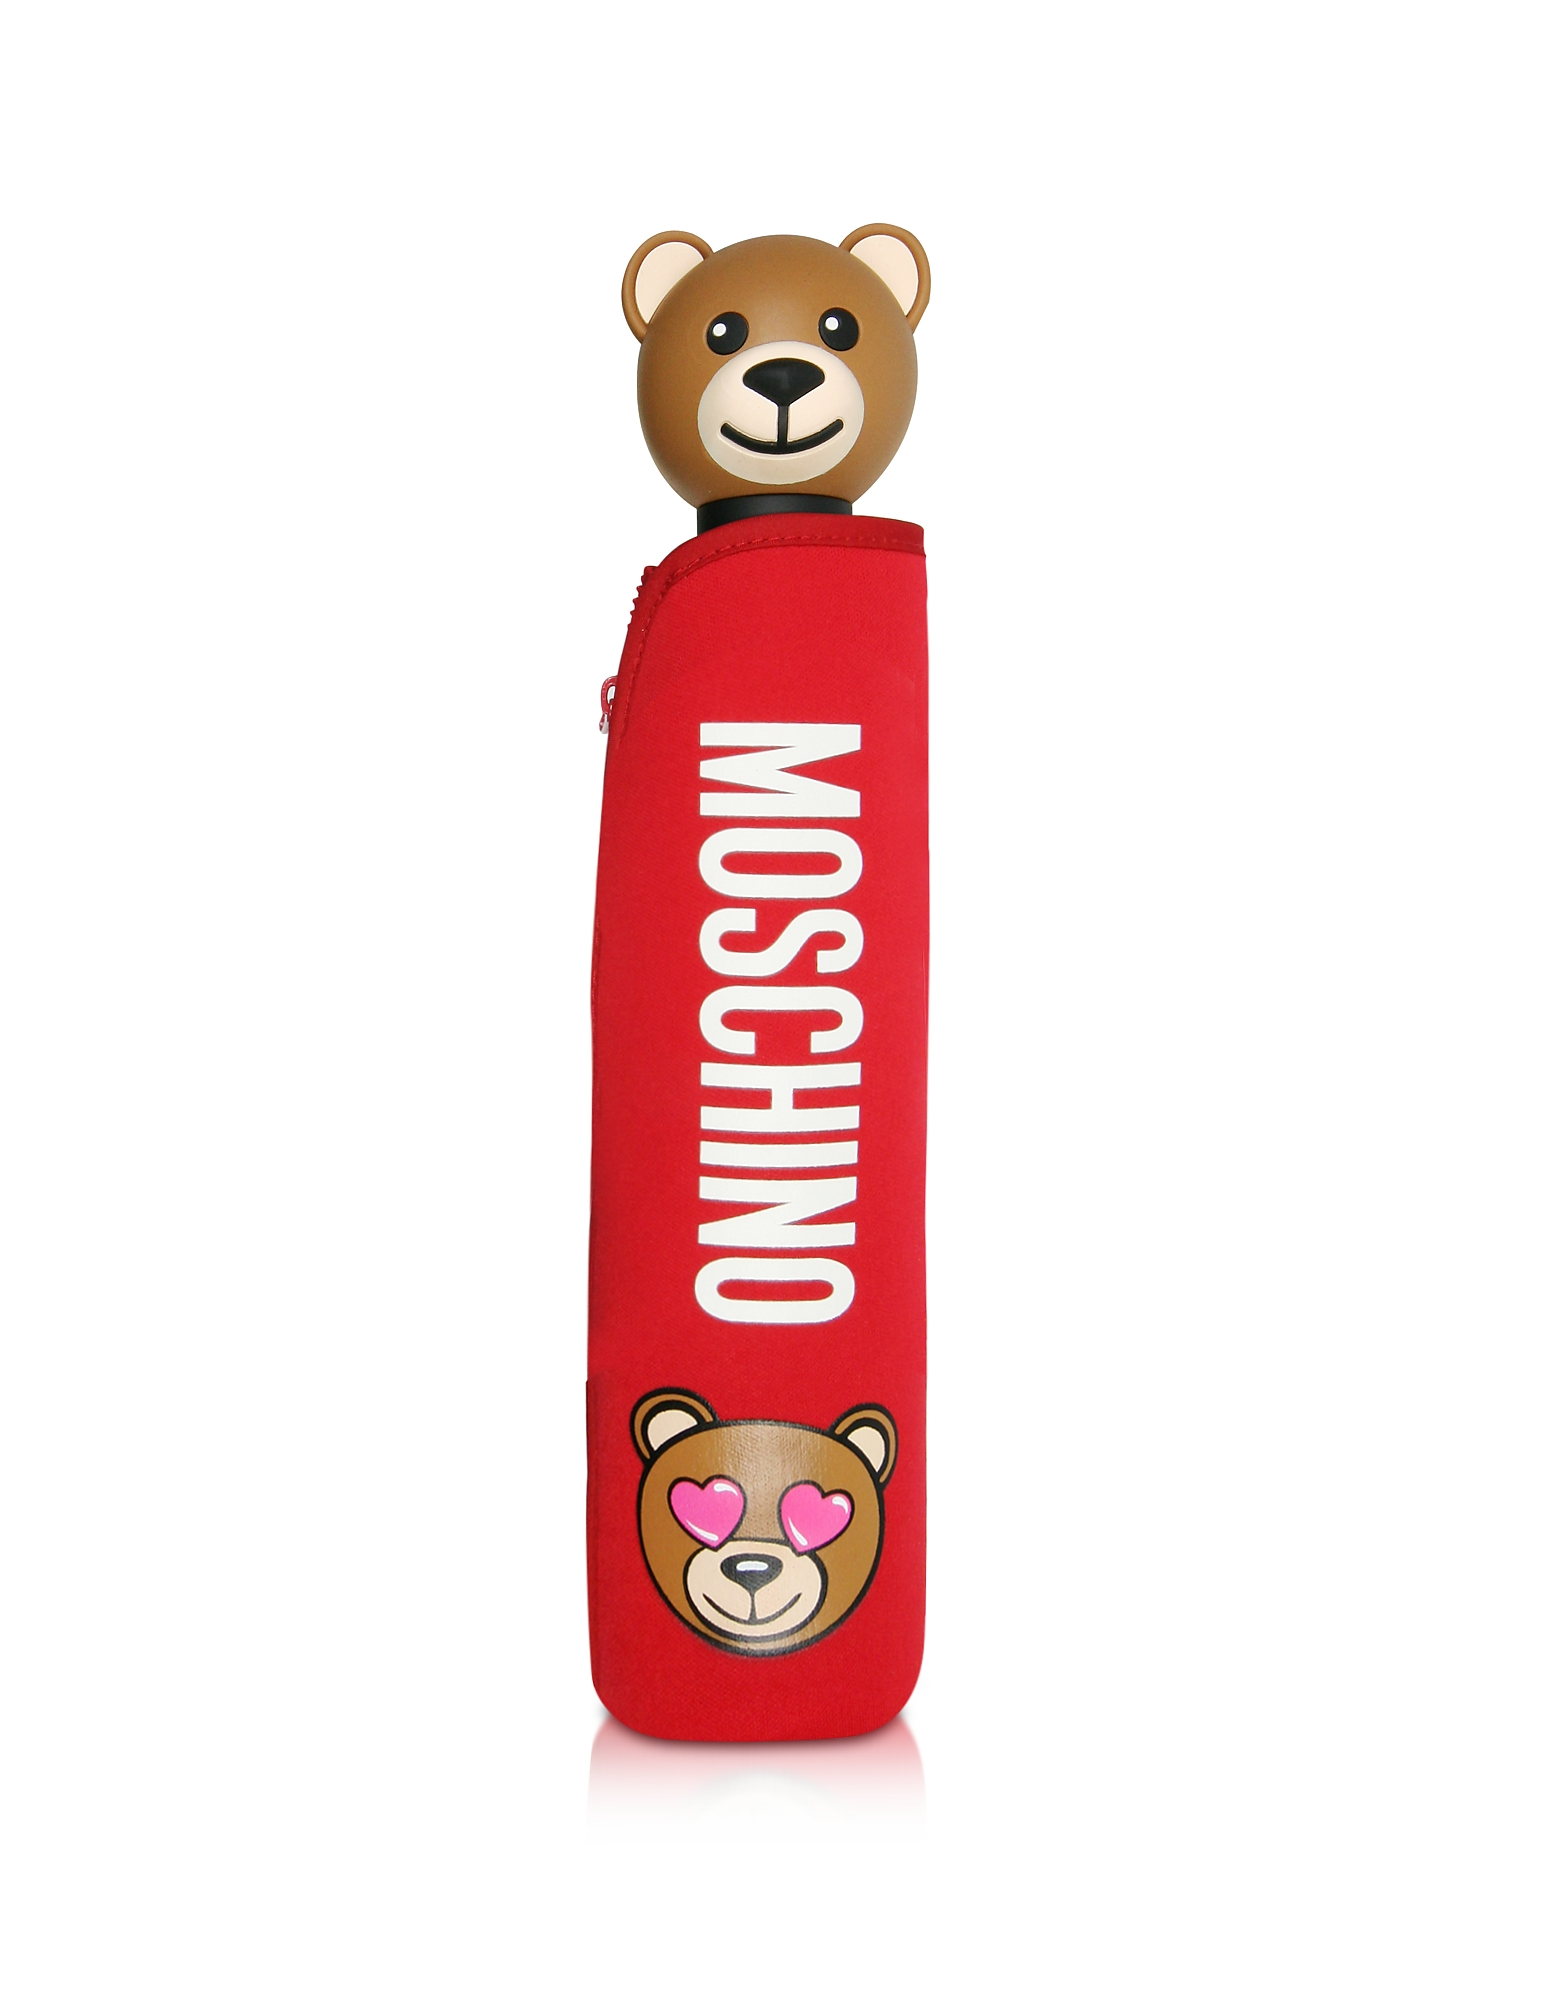 Moschino Umbrellas, Toy in Love Red Mini Umbrella w/Teddy Handle and Neoprene Pouch